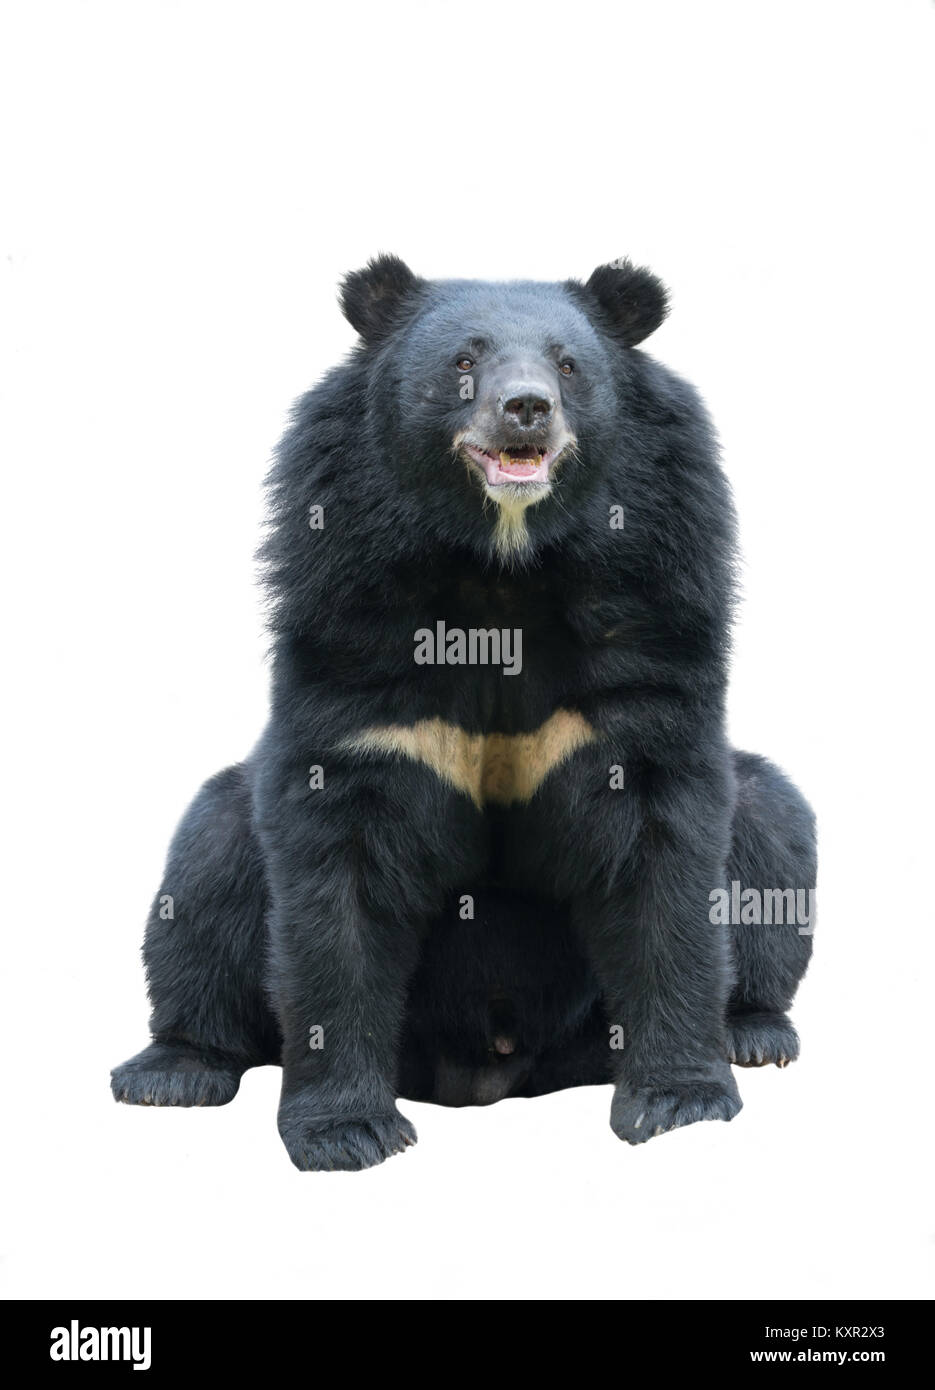 adfecc84471 Black Bear Cut Out Stock Images   Pictures - Alamy